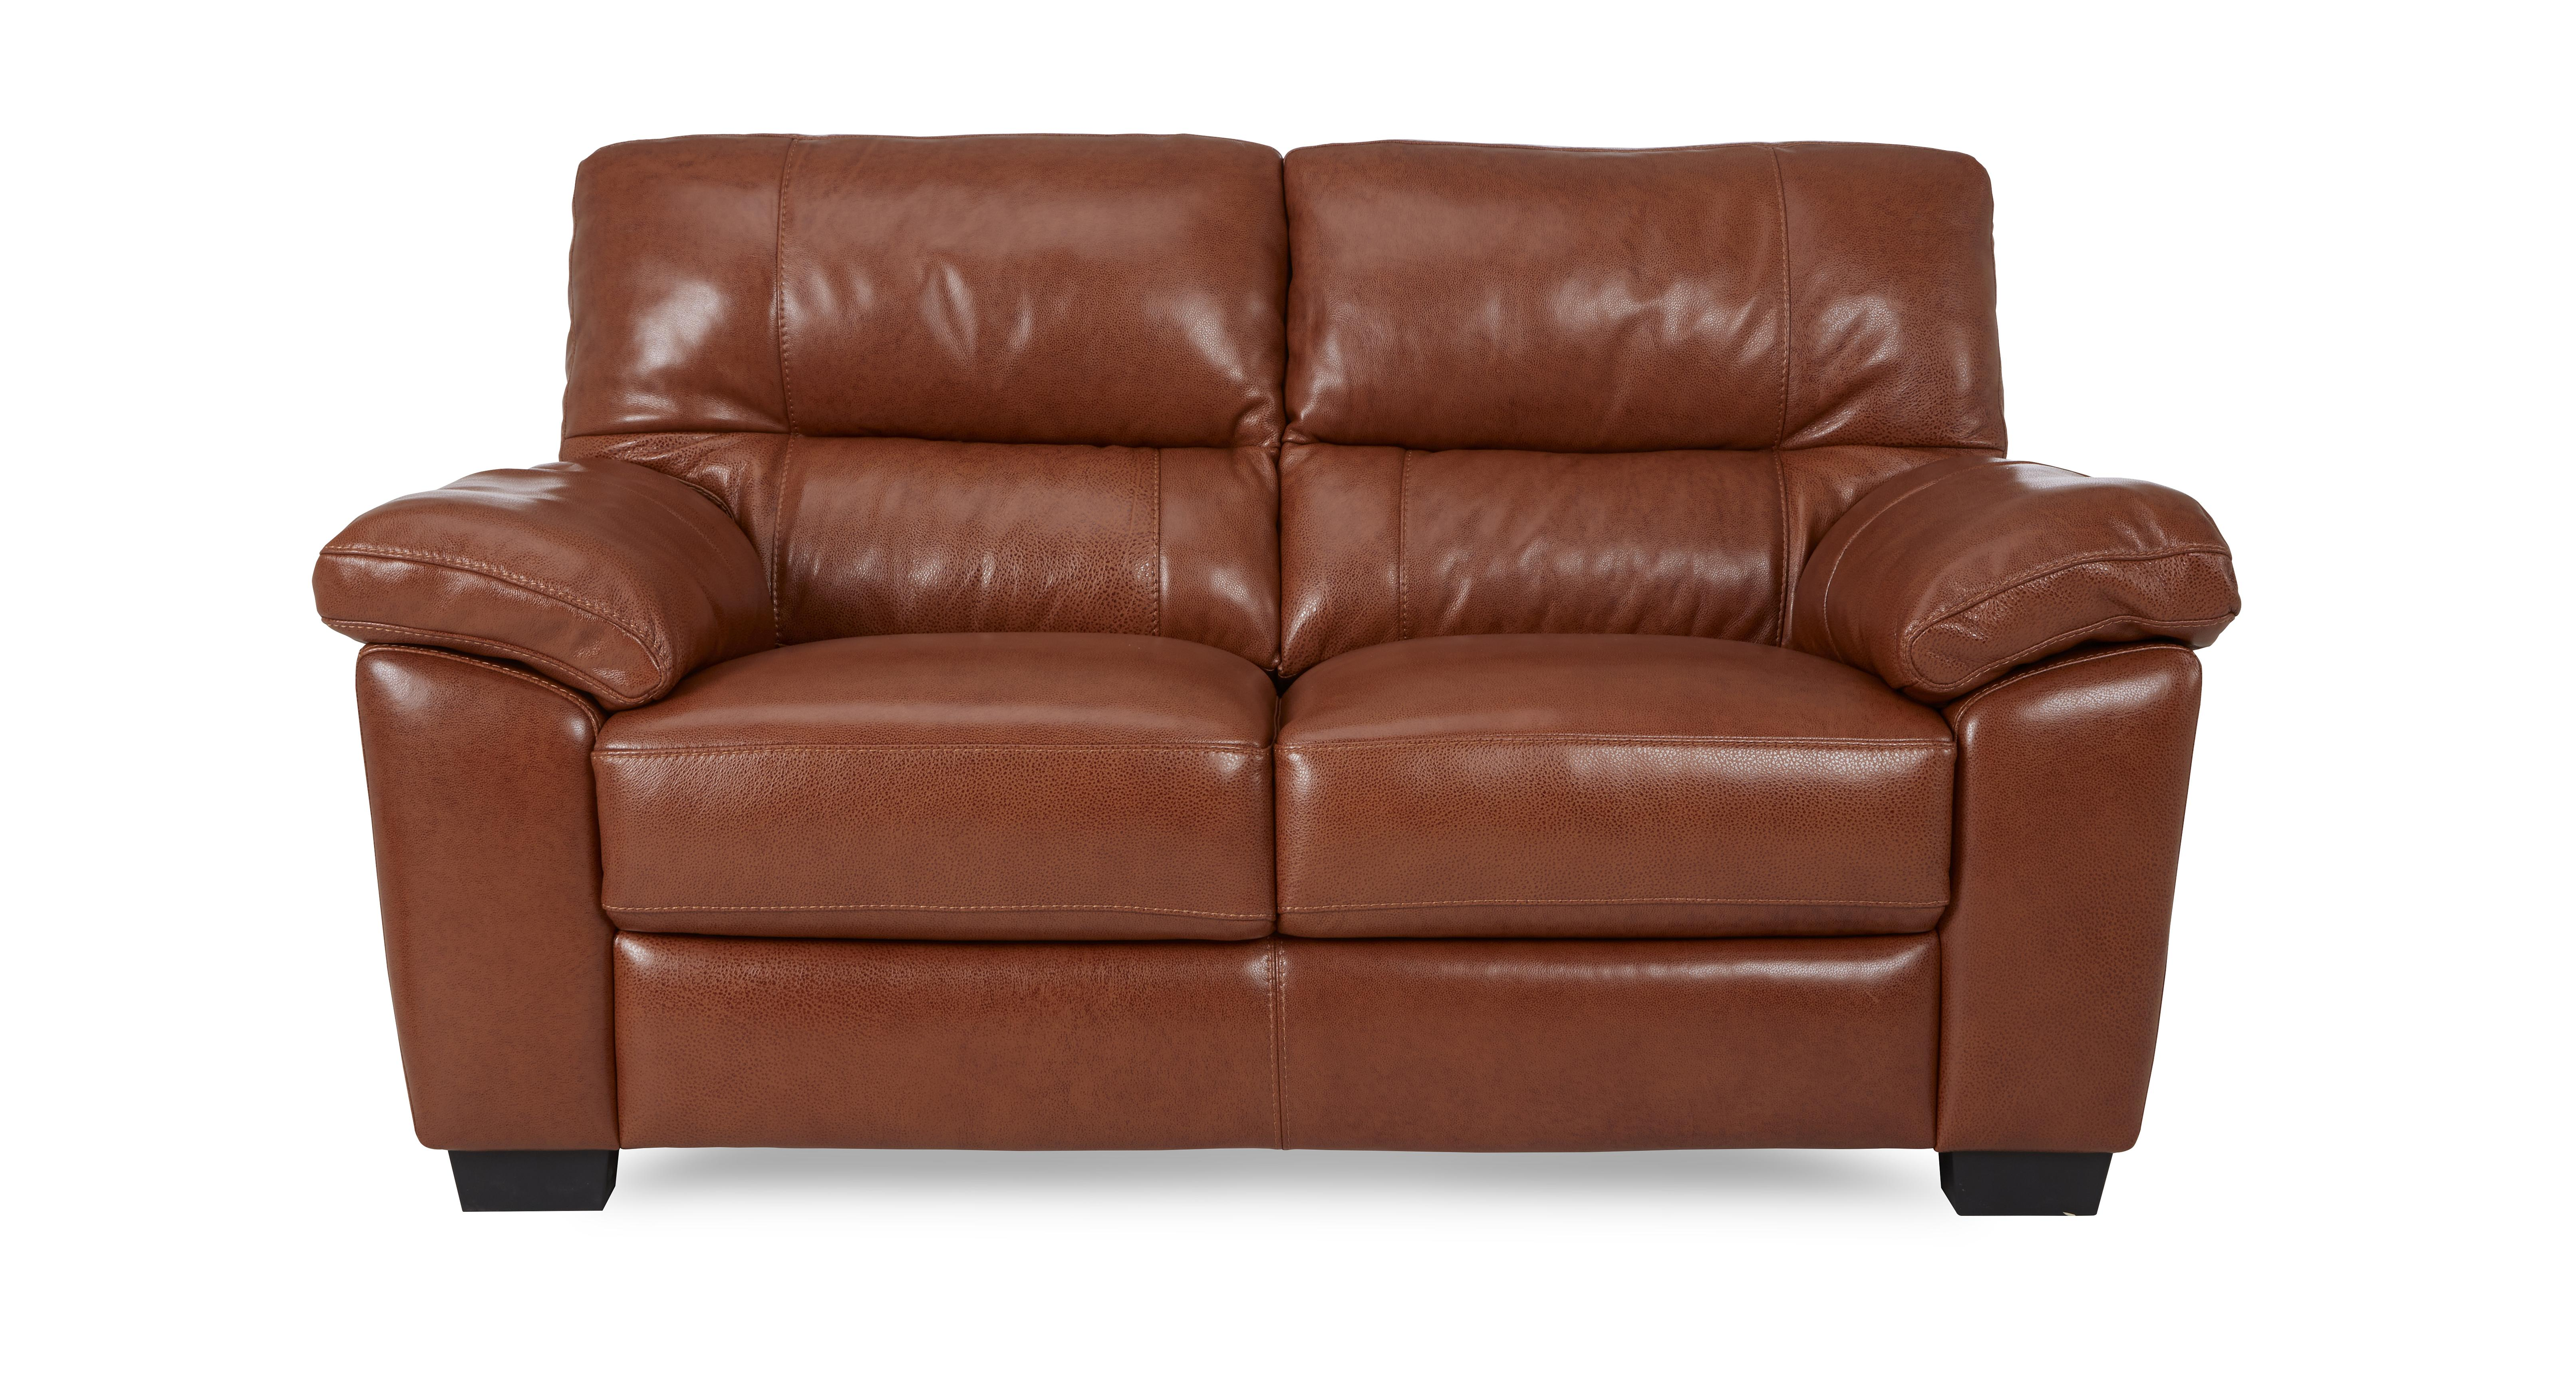 Dalmore Large 2 Seater Sofa Brazil With Leather Look